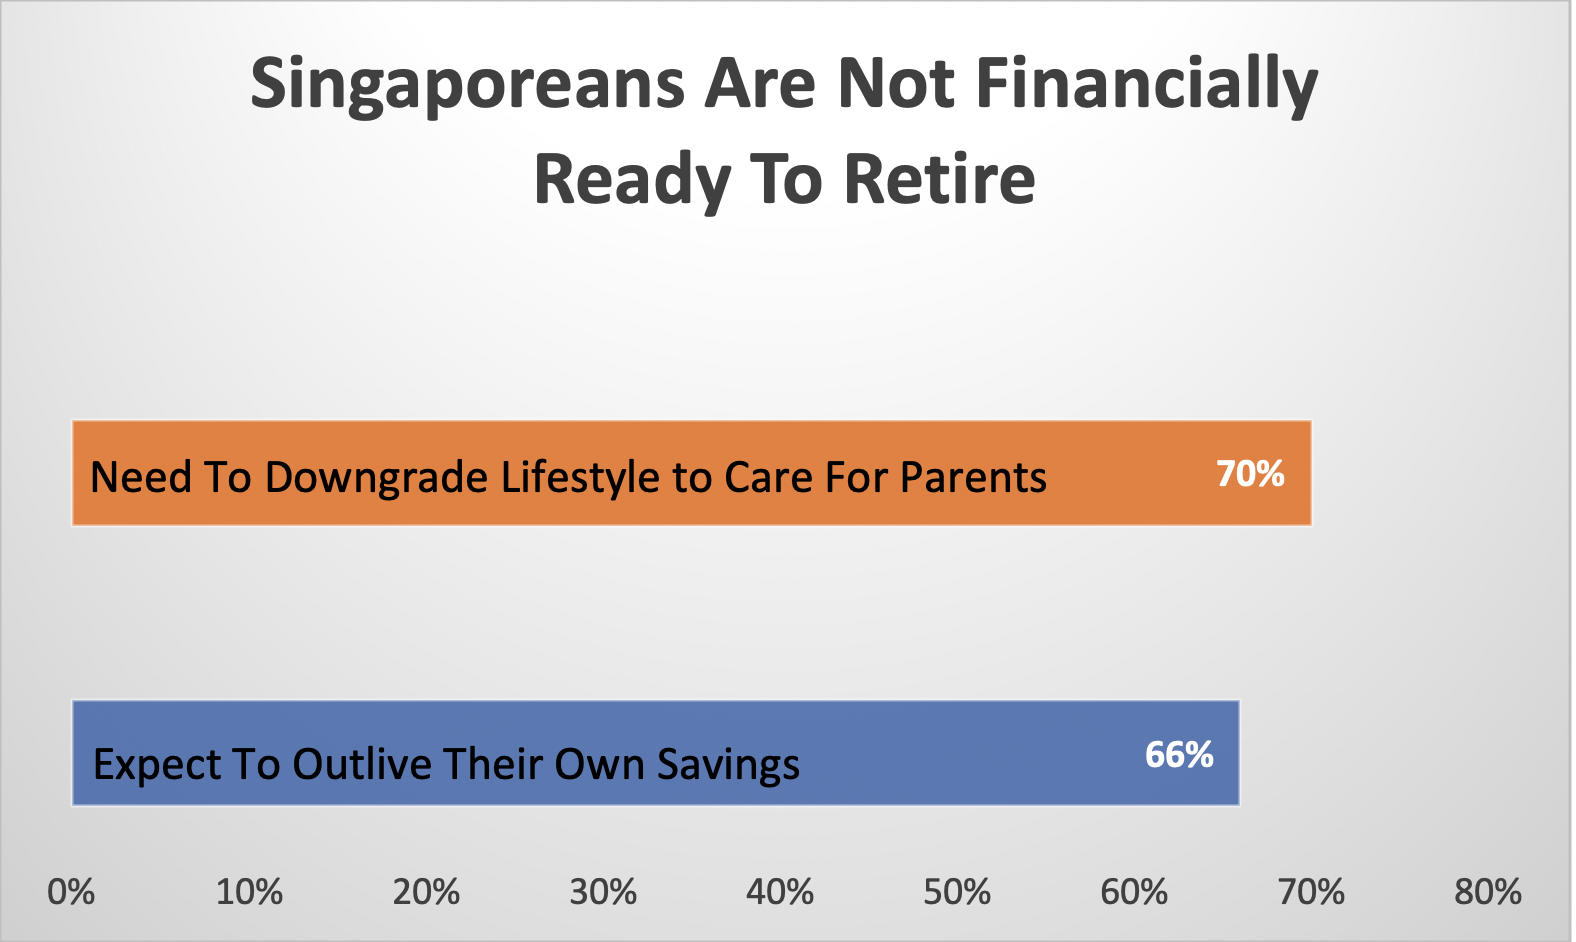 Singaporeans are not ready to retire